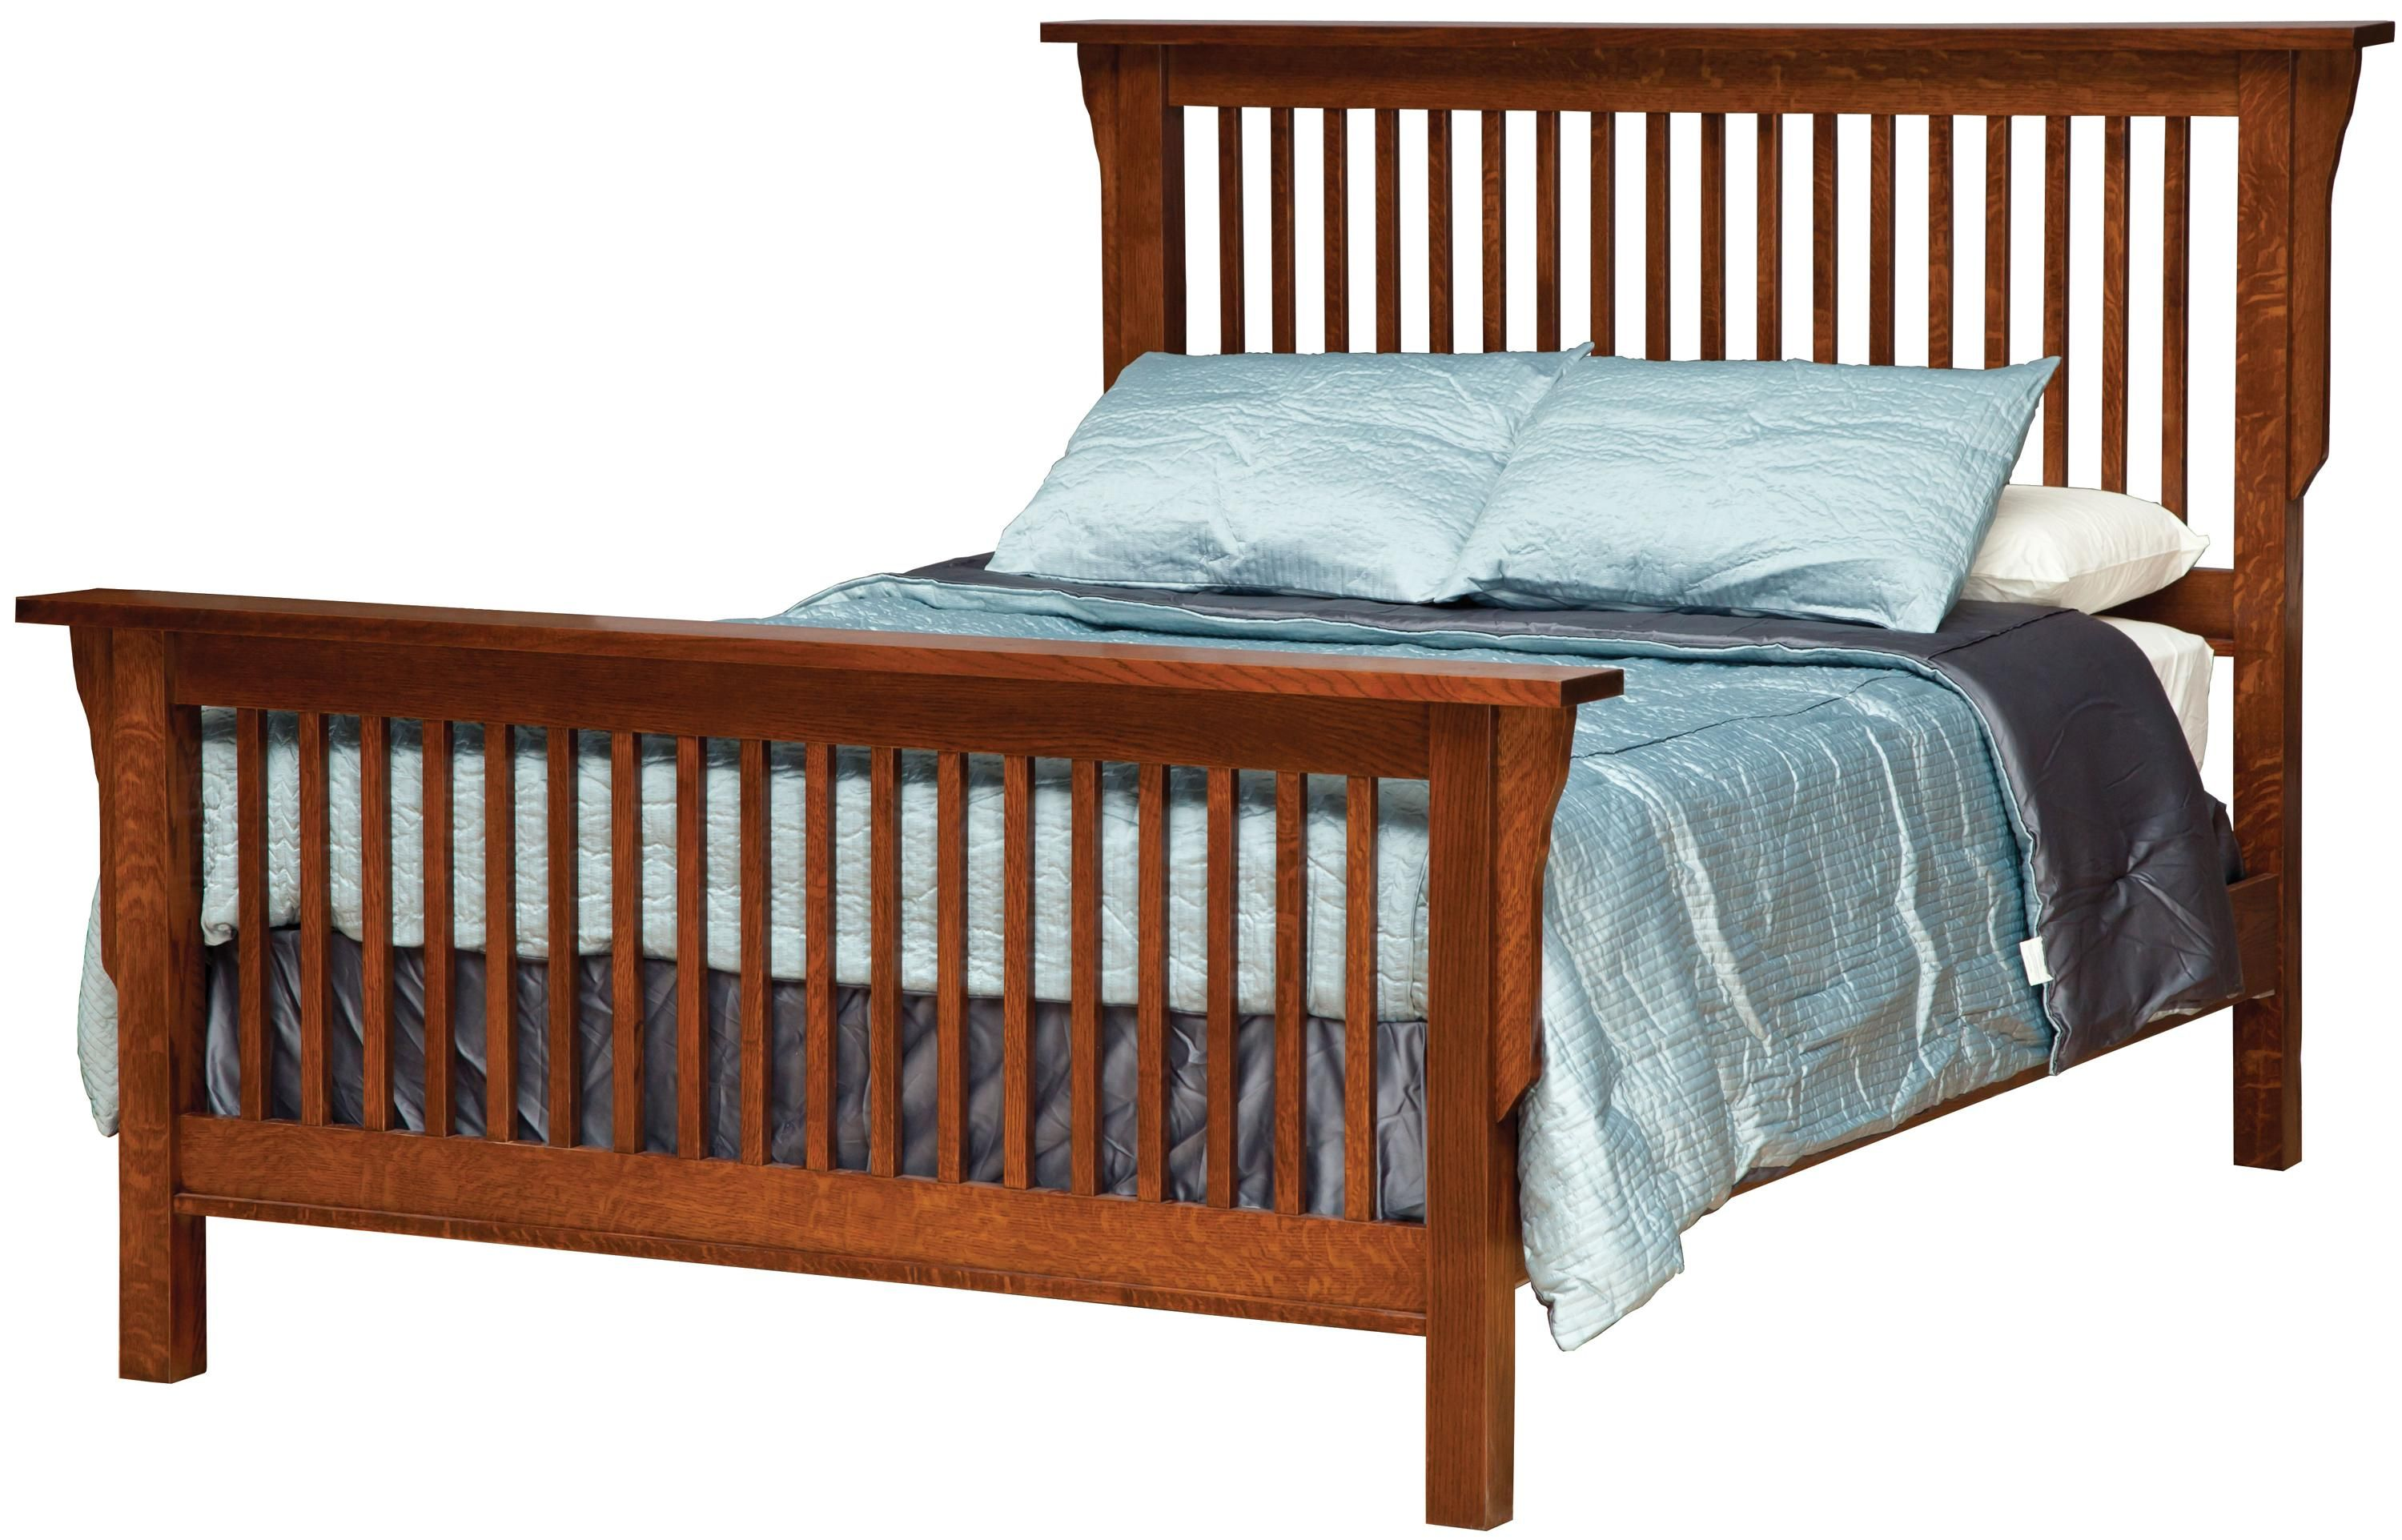 amish mission california king mission style frame bed with headboard footboard slat detail by